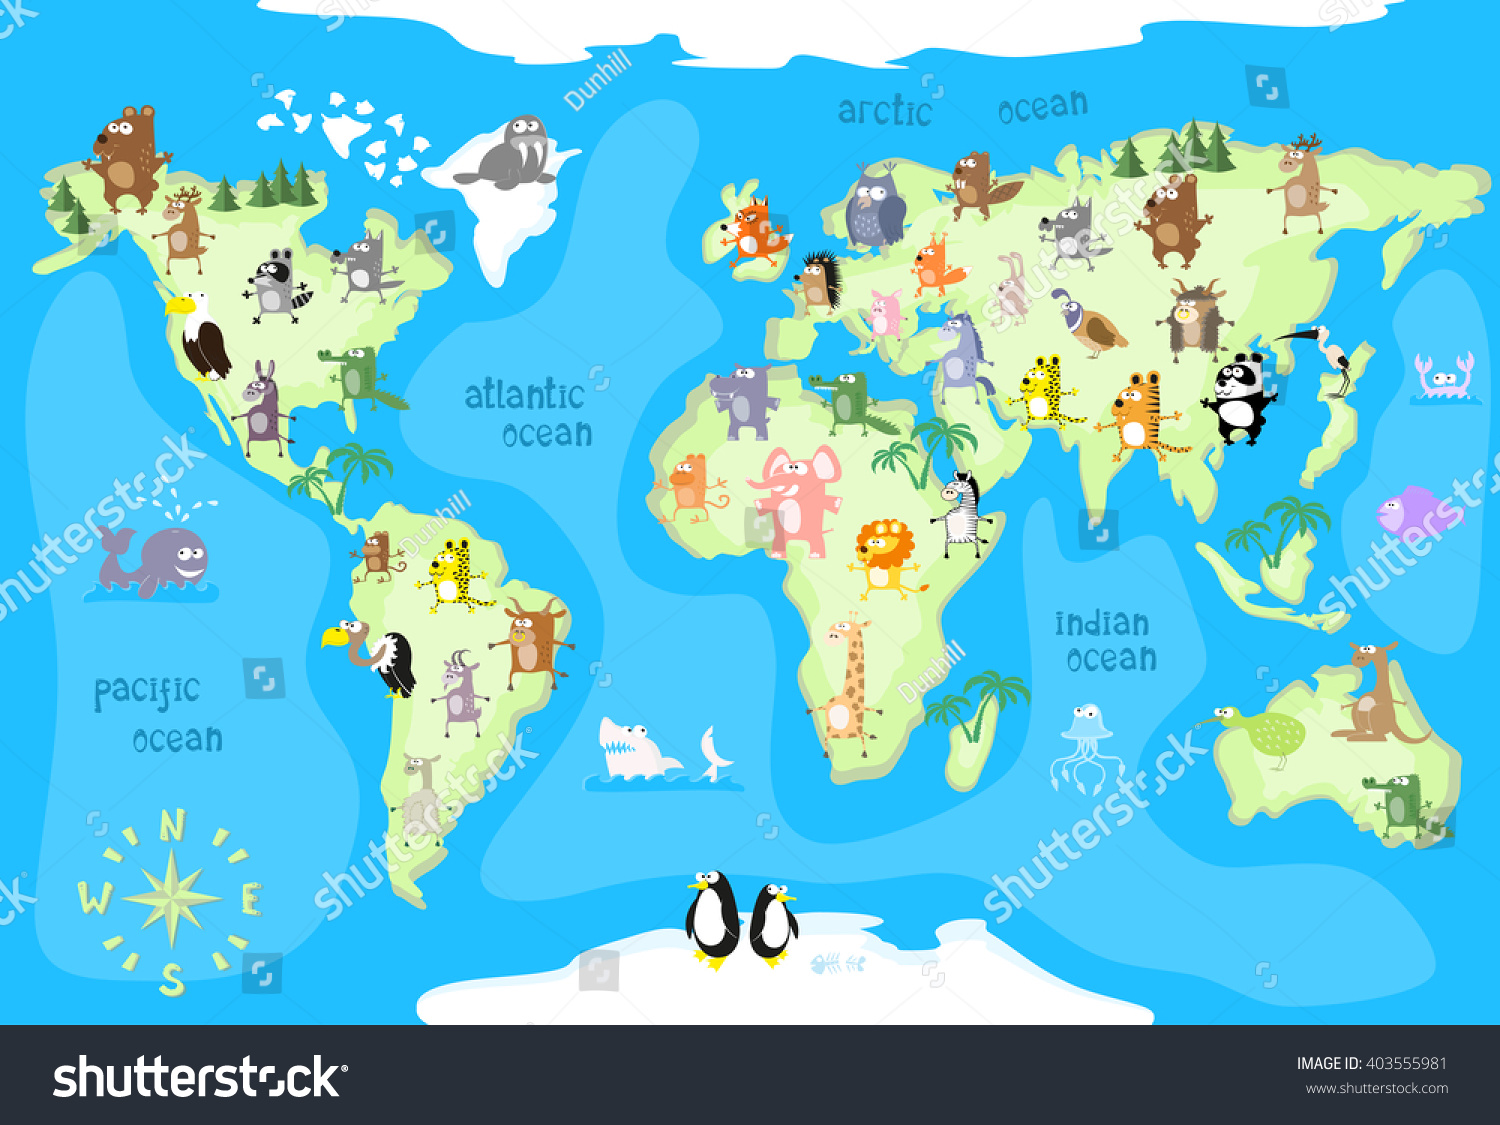 Concept design world map animals all vectores en stock 403555981 concept design world map animals all vectores en stock 403555981 shutterstock gumiabroncs Gallery